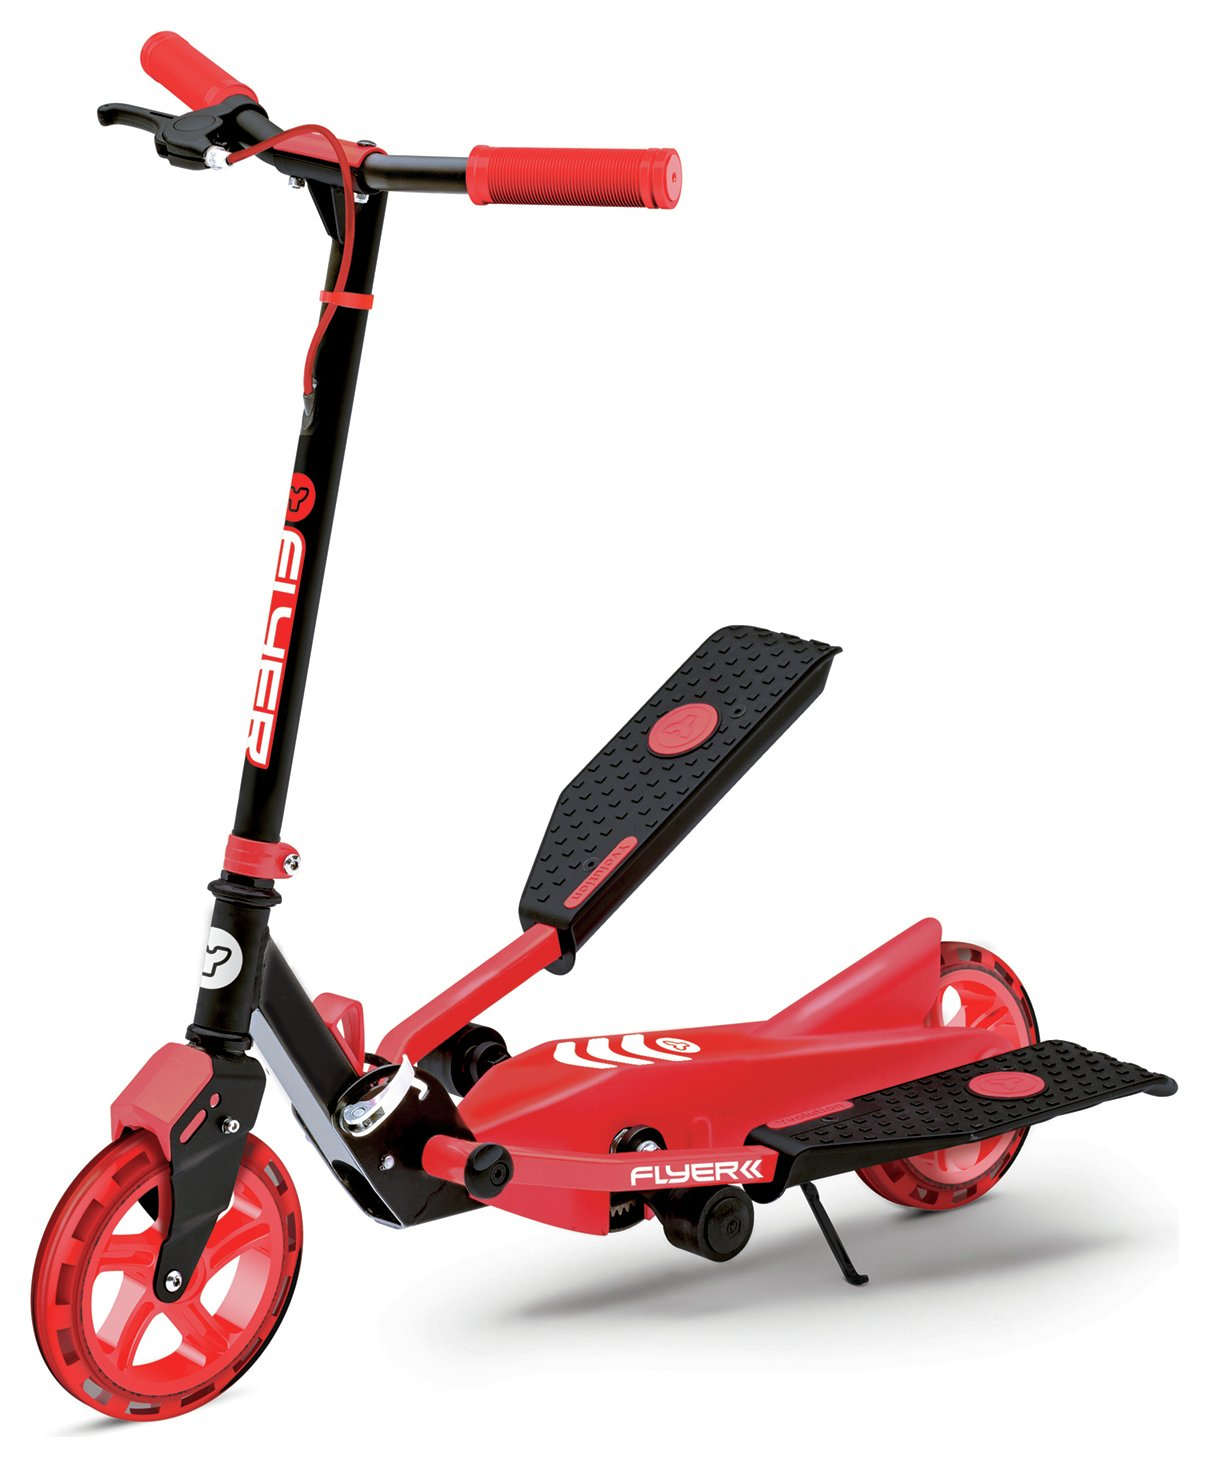 Click here for Y-Flyer - Scooter - Red prices